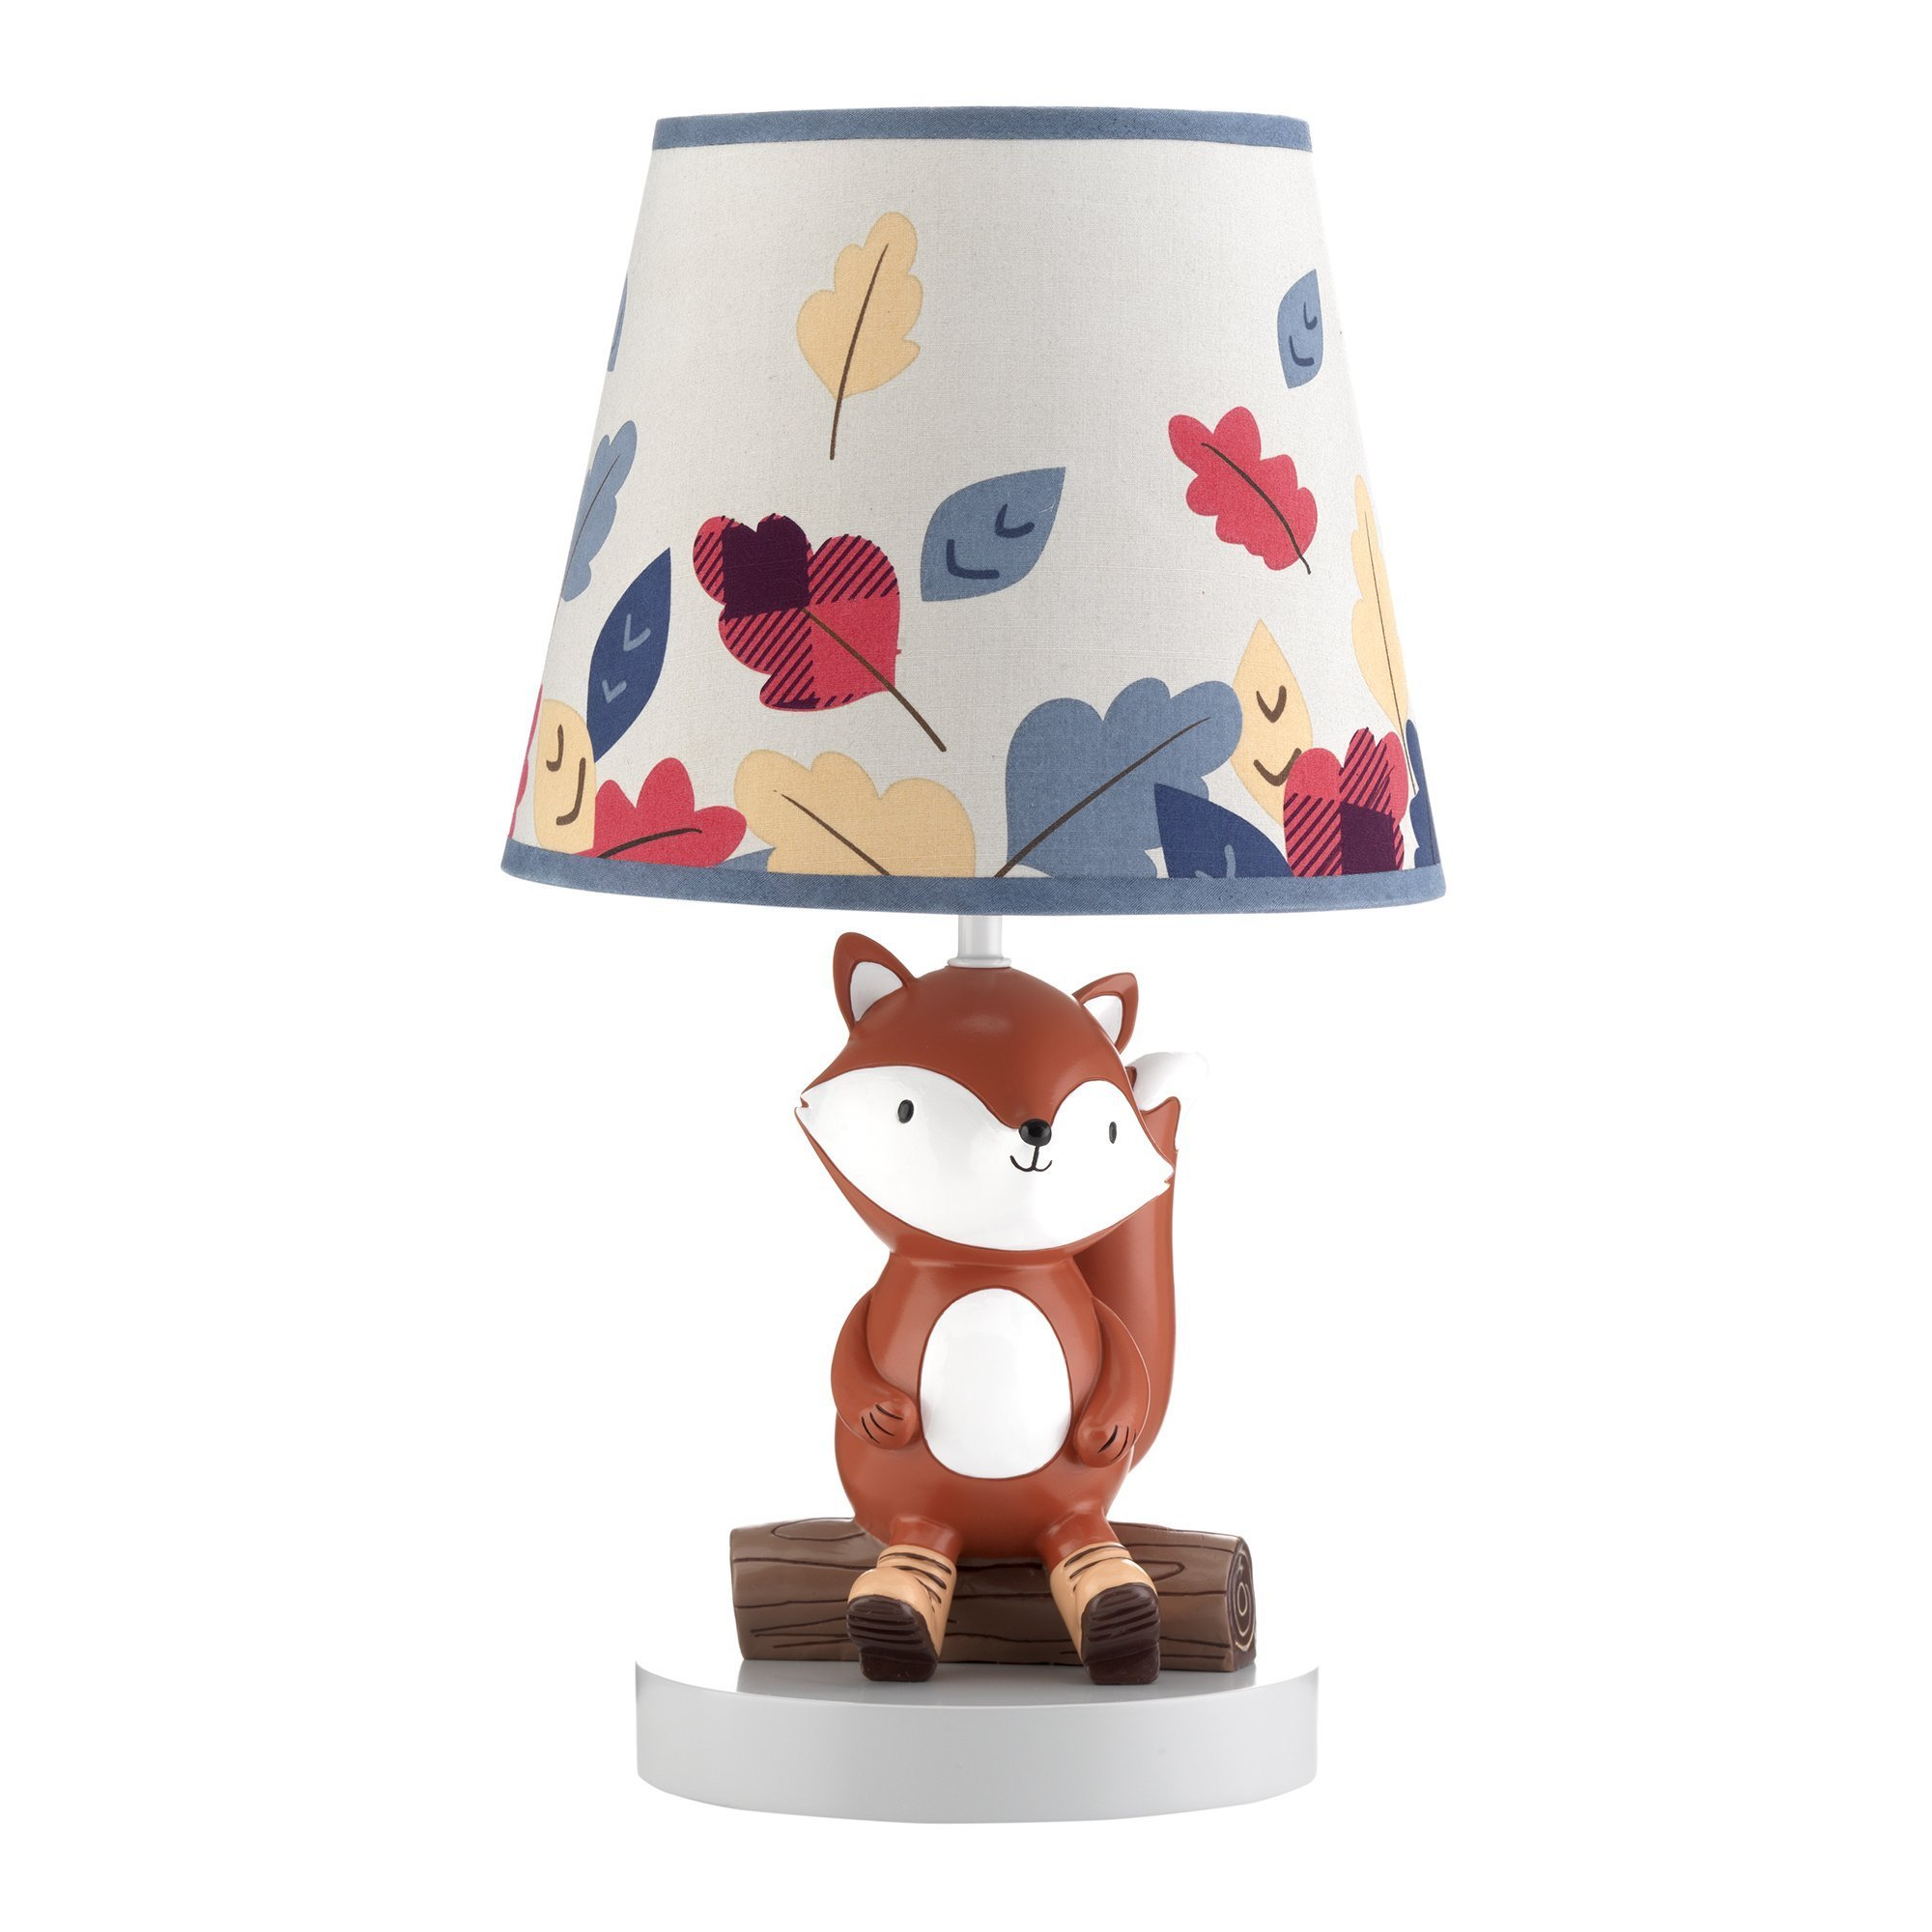 Lambs & Ivy(R) Little Campers Lamp with Shade & Bulb by Lambs & Ivy